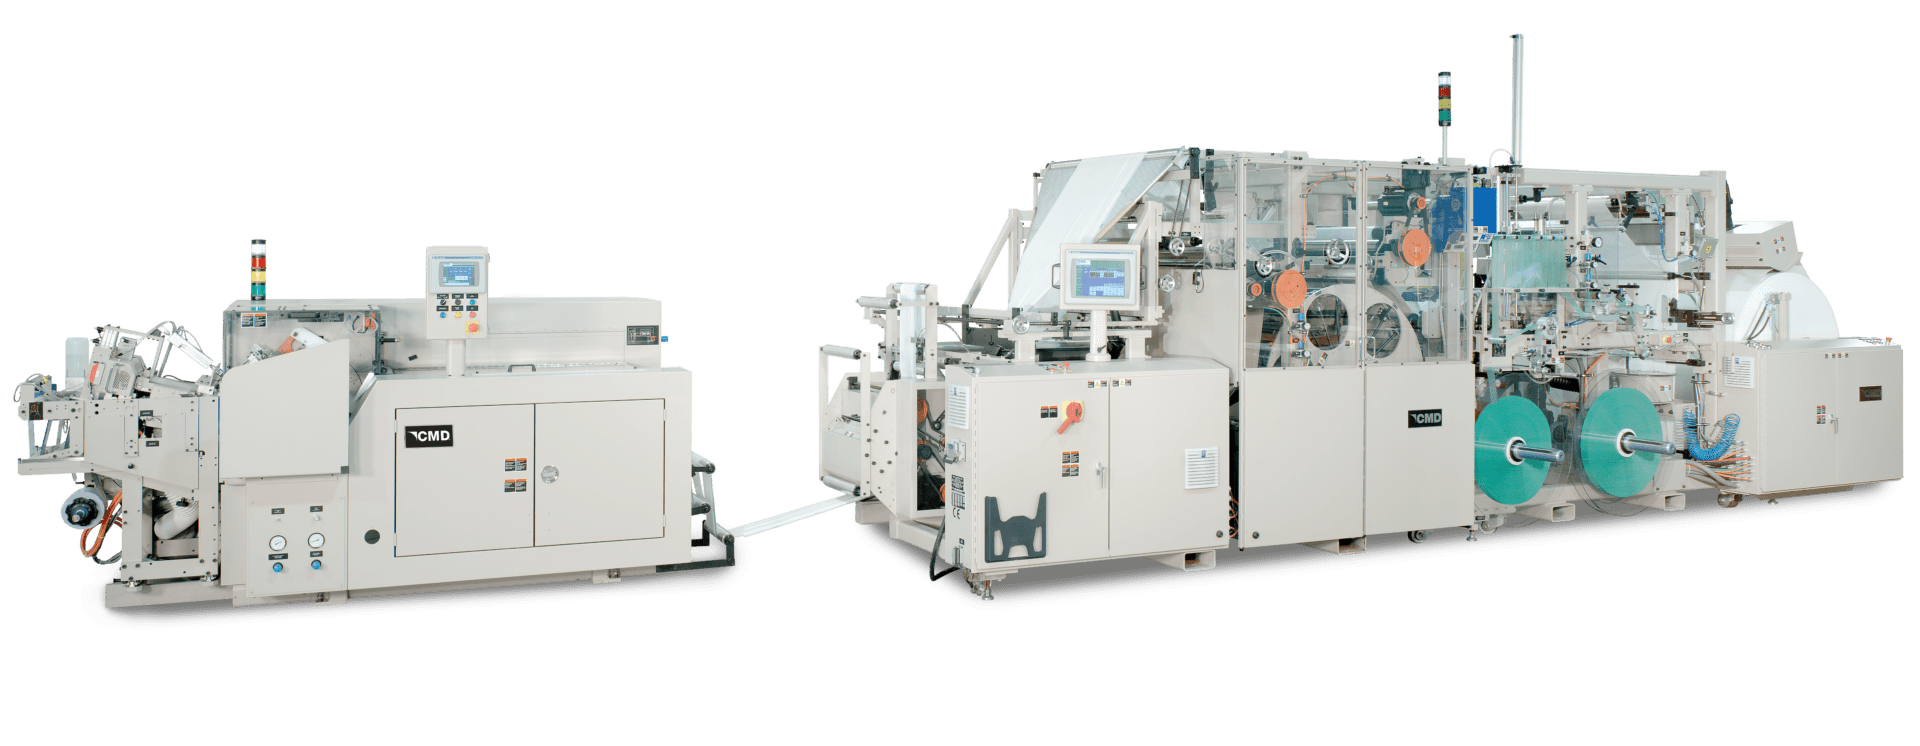 Global Overlap Bag Winder shown in line with the CMD Global Drawtape System